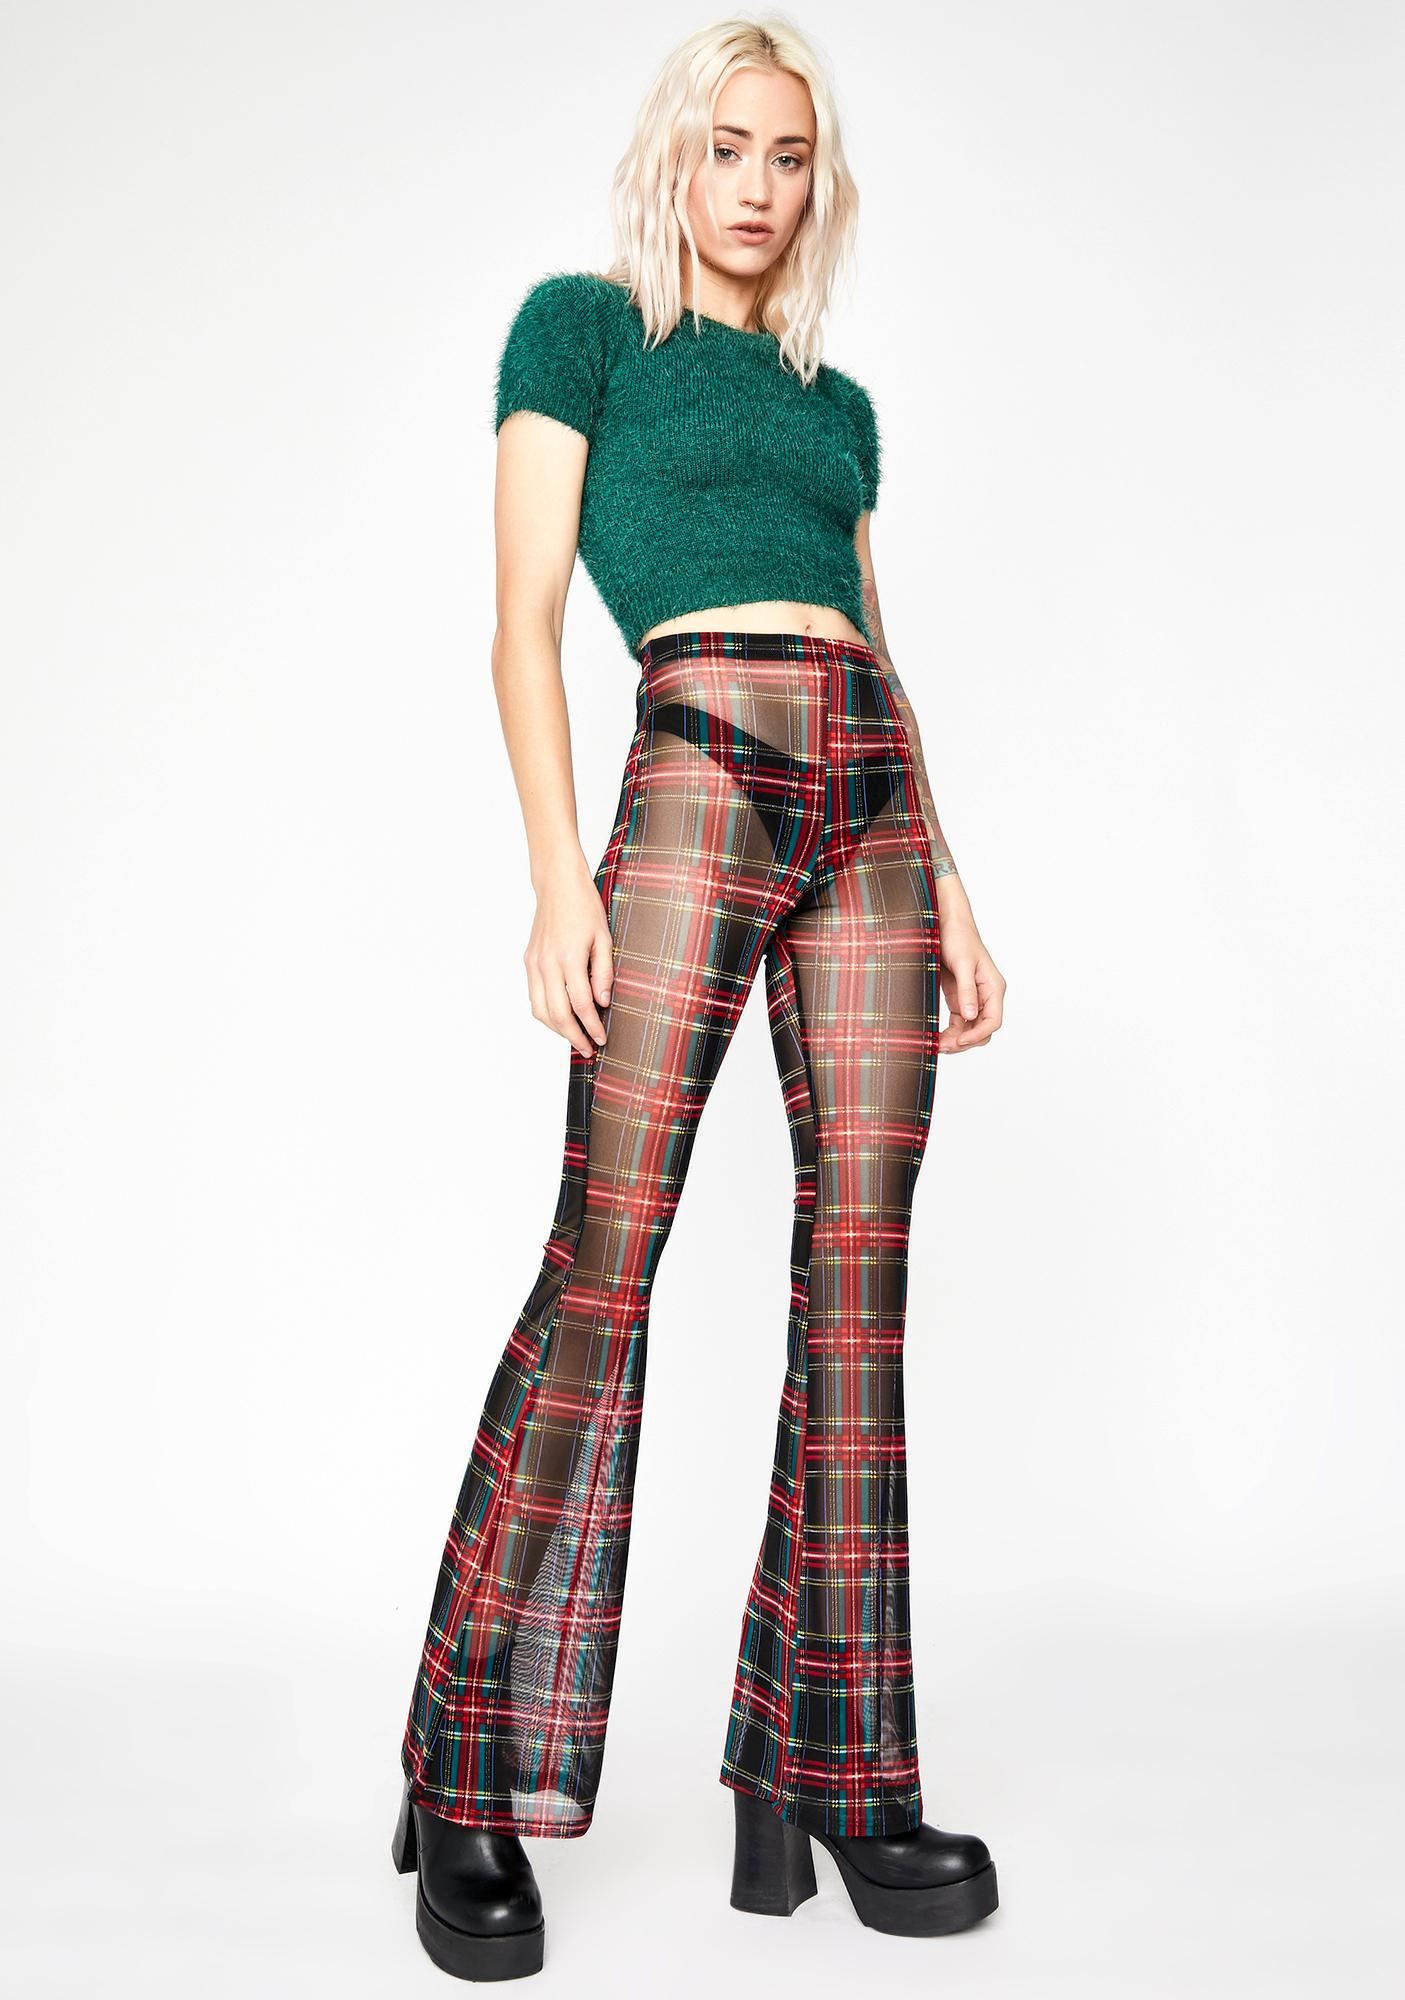 Lustful Lass Mesh Pants